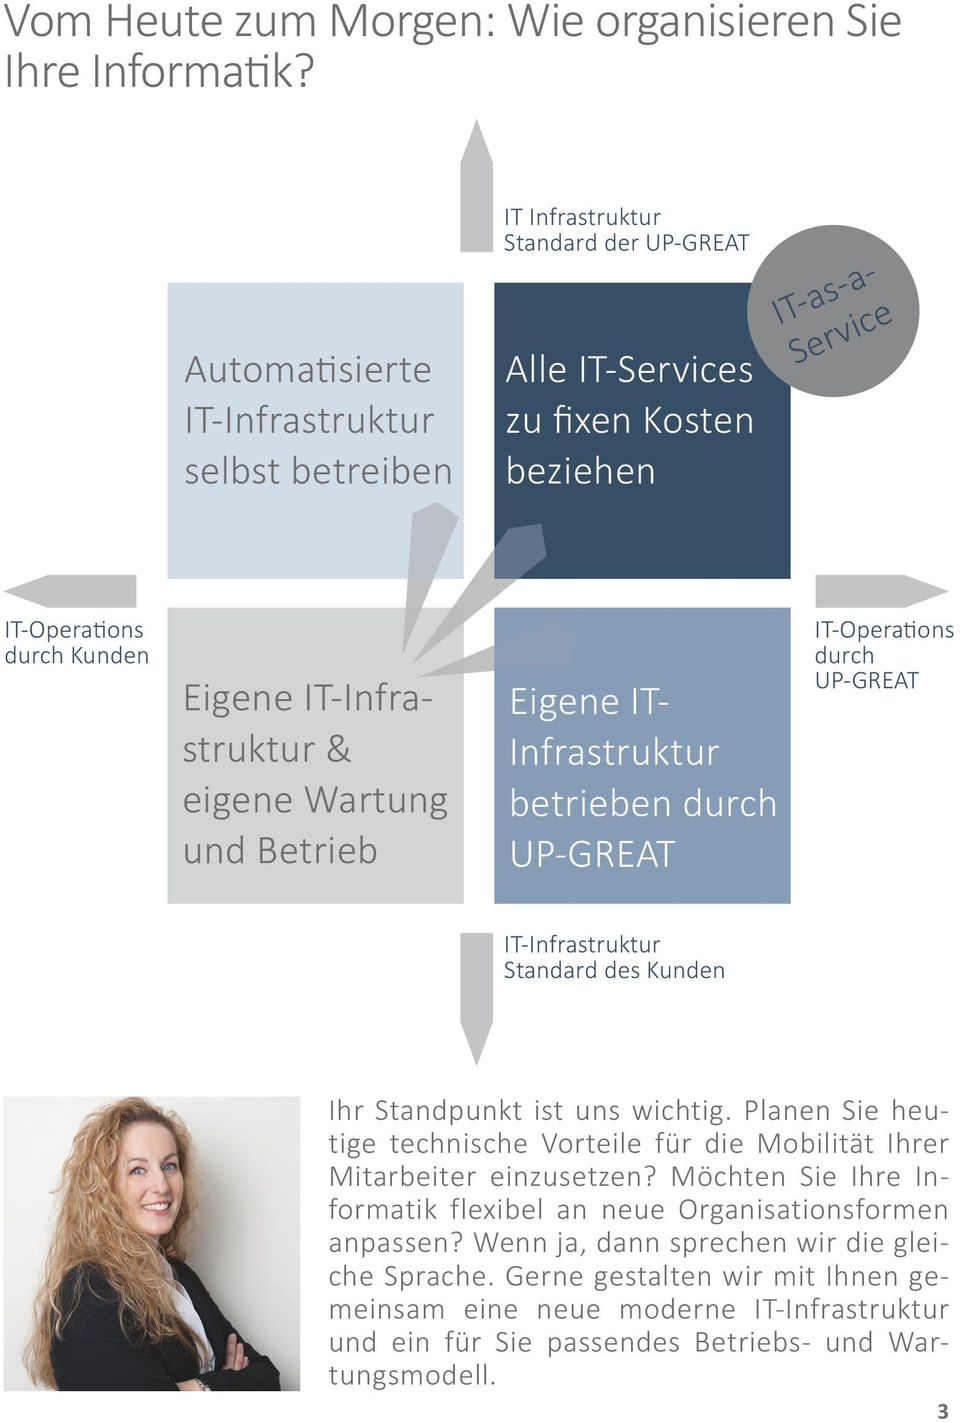 IT-Infrastruktur & eigene Wartung und Betrieb Eigene IT- Infrastruktur betrieben durch UP-GREAT IT-Operations durch UP-GREAT IT-Infrastruktur Standard des Kunden Ihr Standpunkt ist uns wichtig.